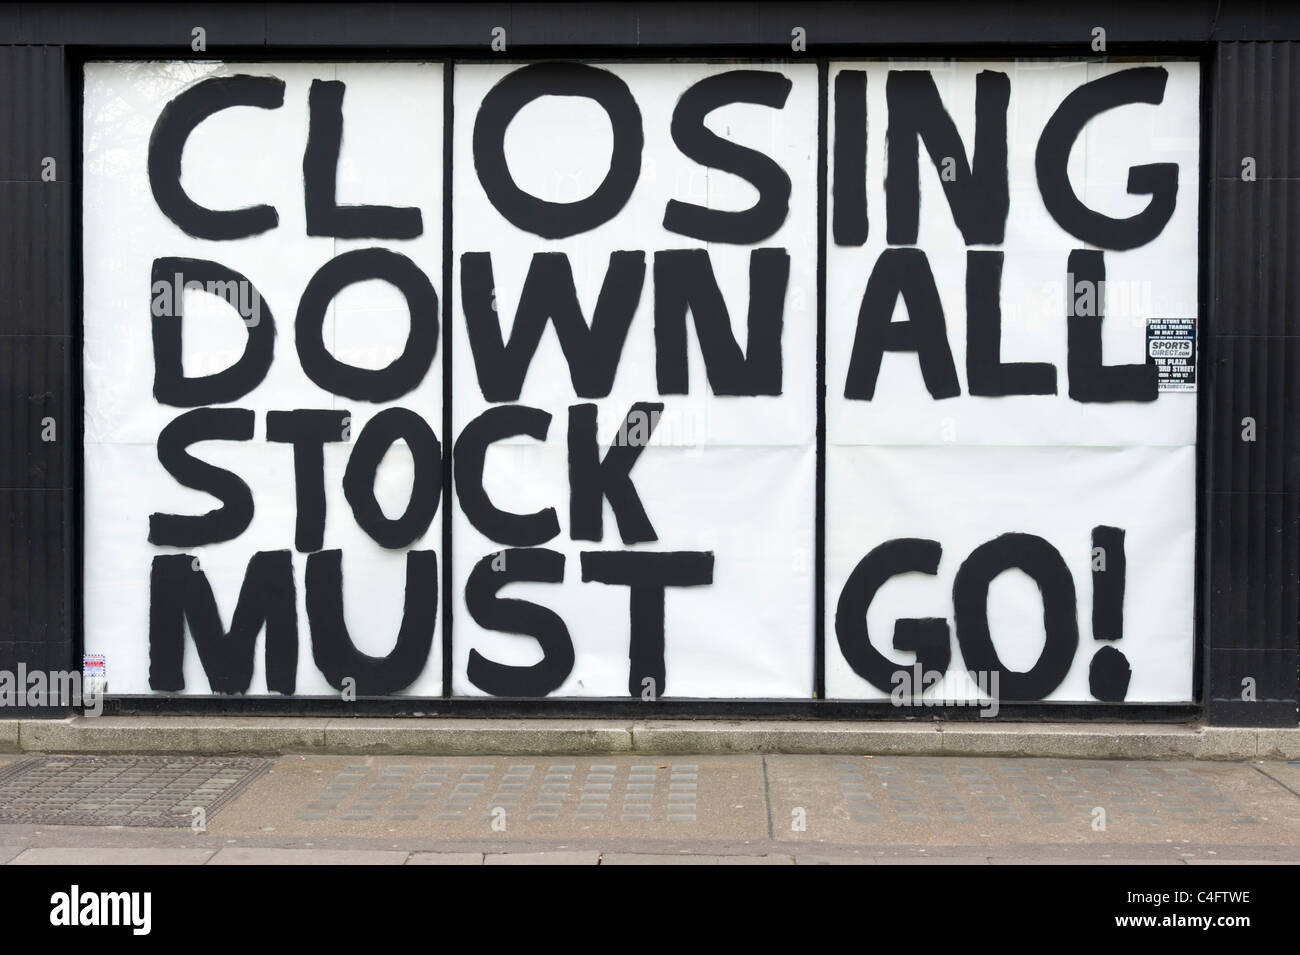 Closing down sale all stock must go sign on shop which has gone out of business, London, UK - Stock Image